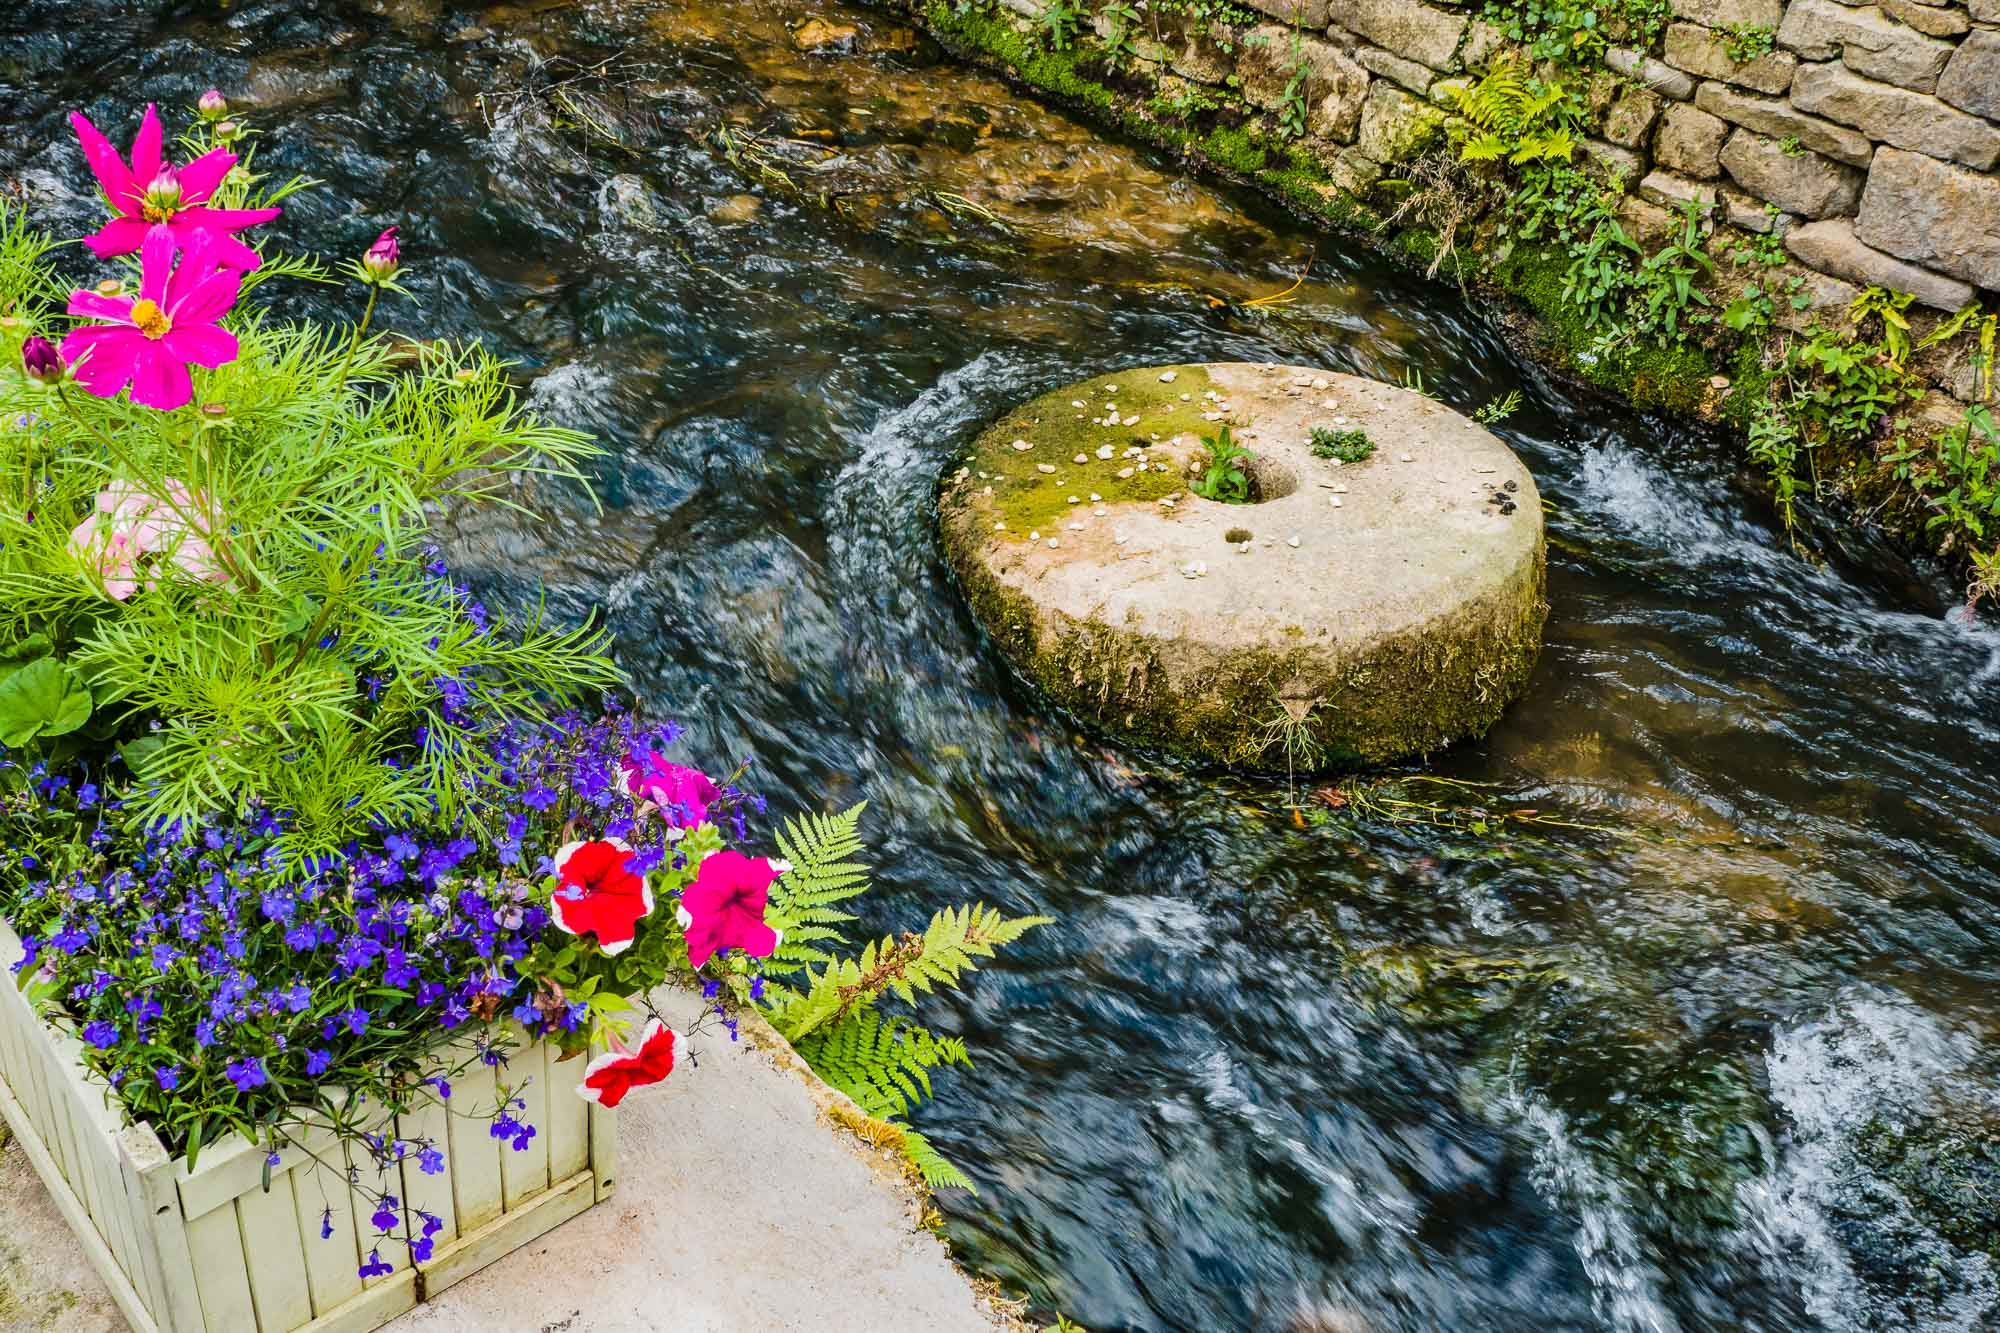 Mill Stone Bourton-on-the-Water